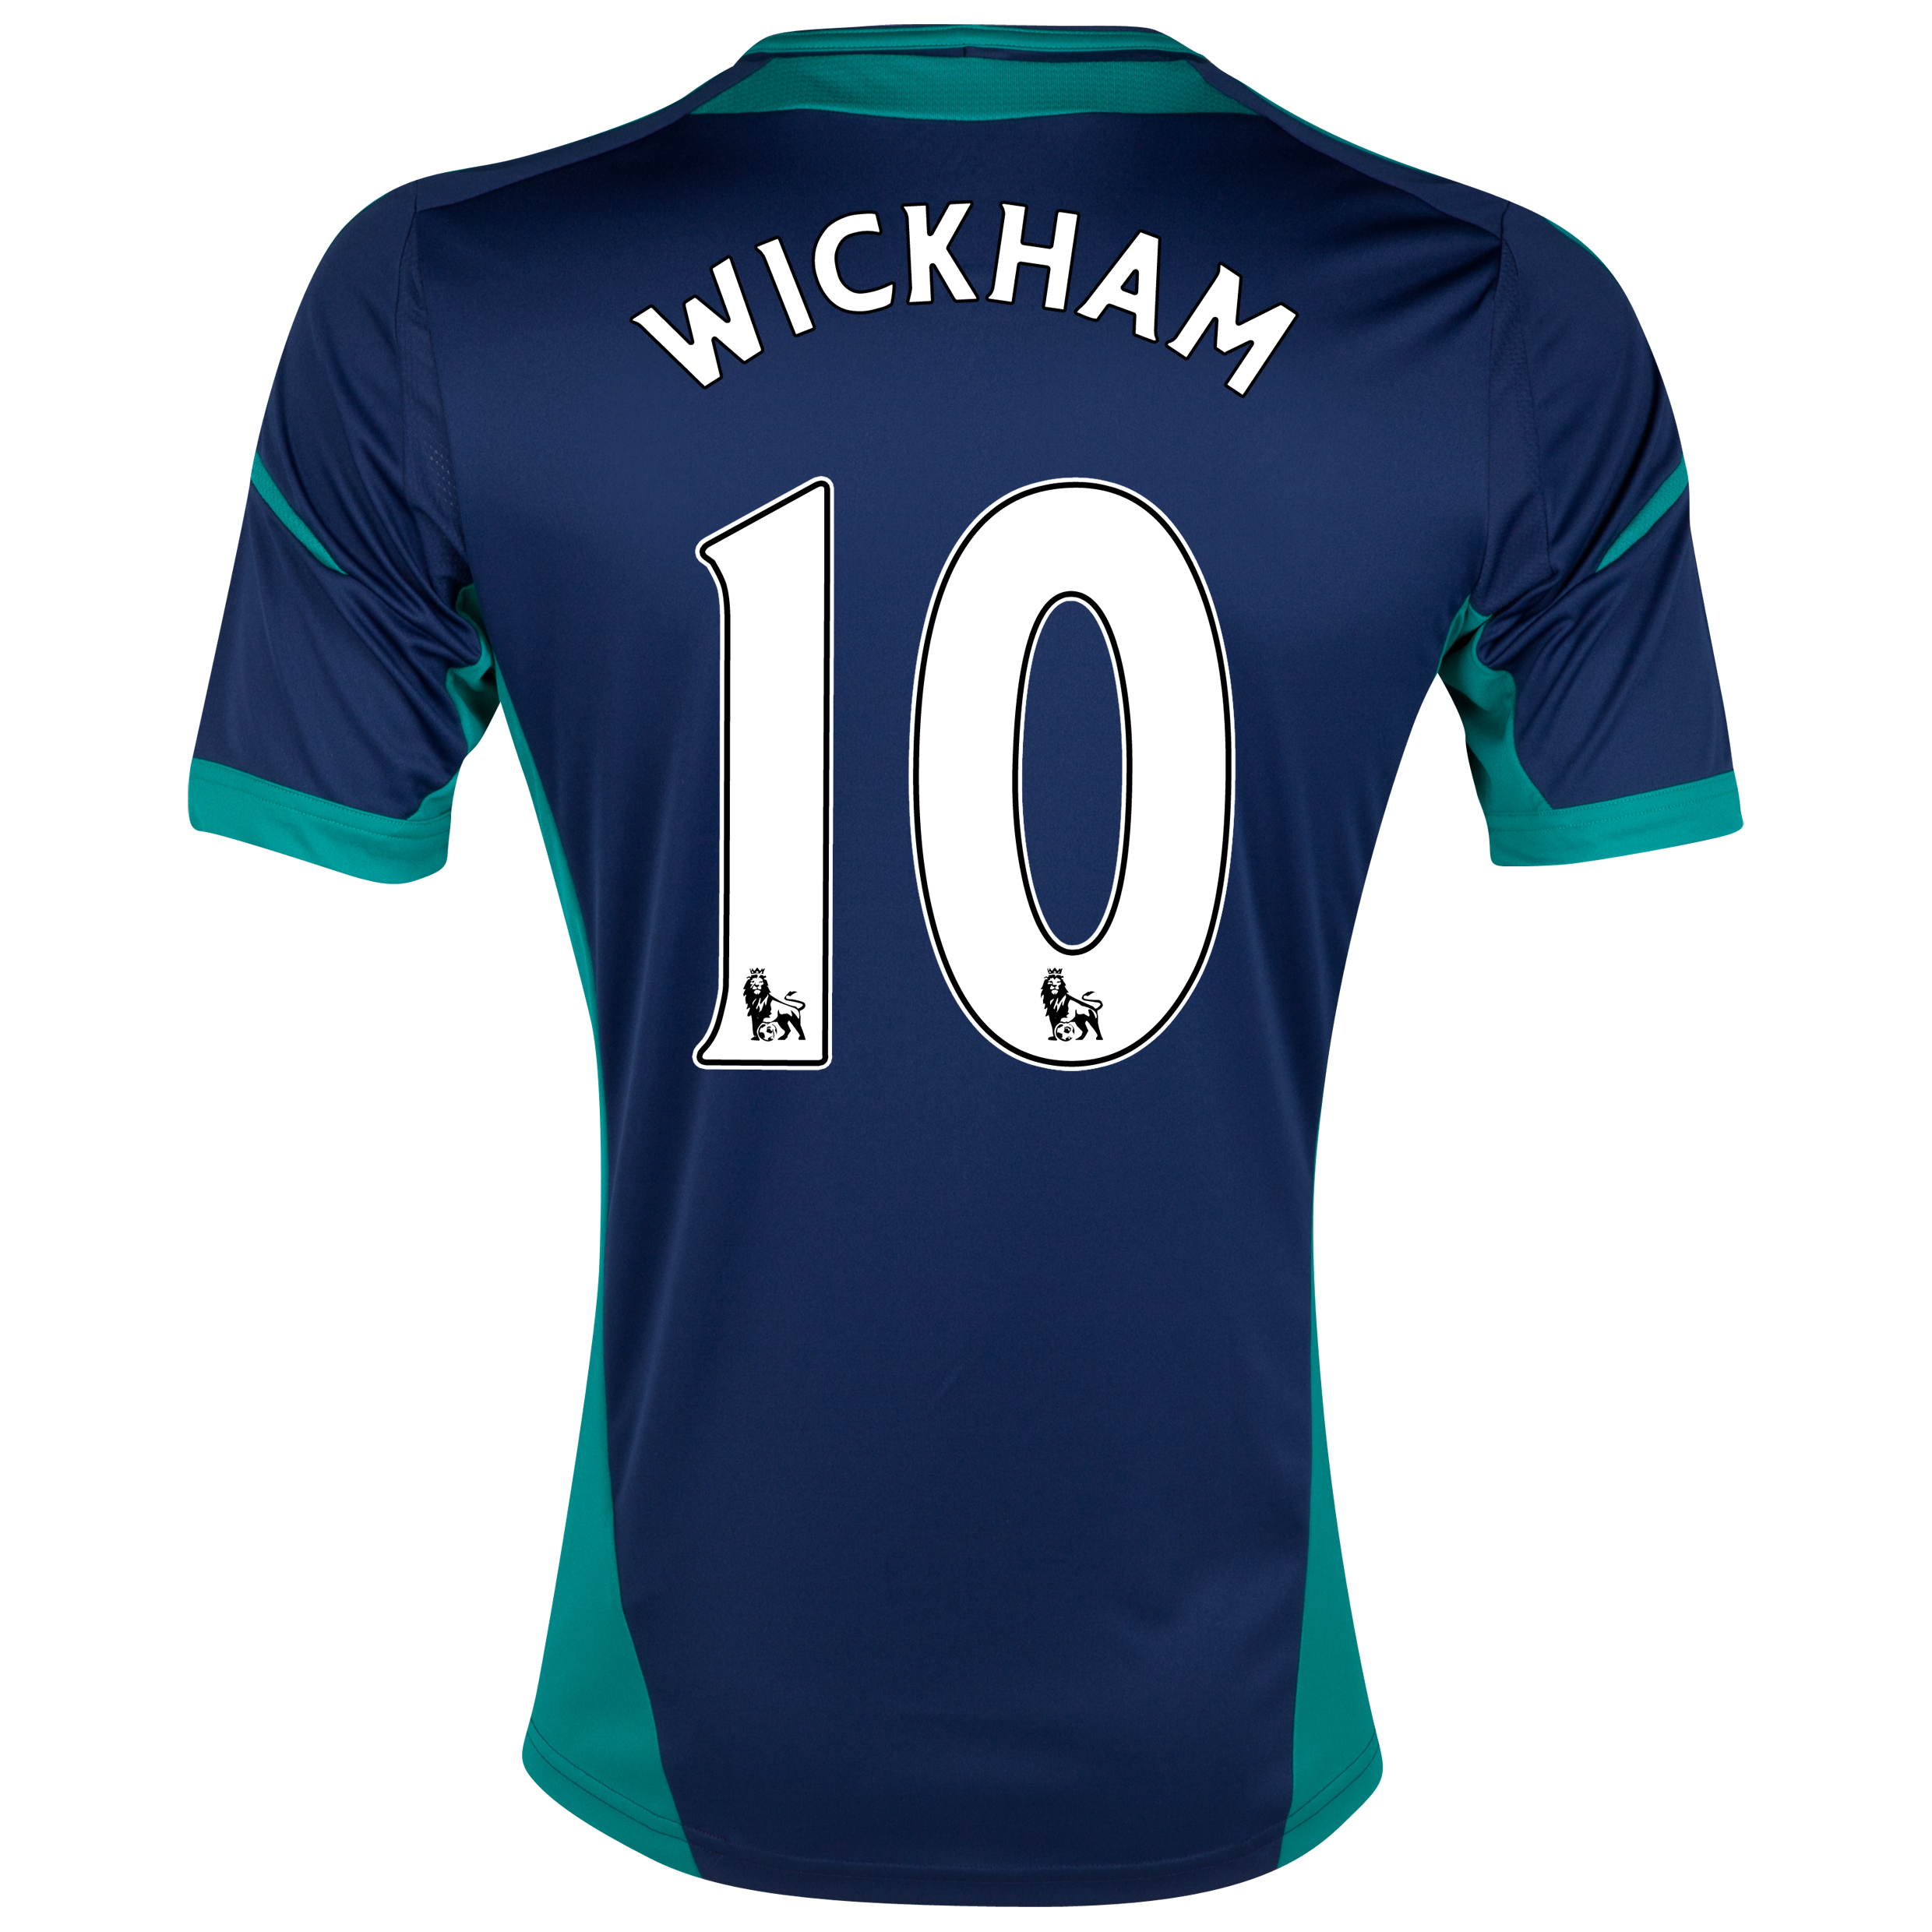 Sunderland Away Shirt 2012/13 with Wickham 10 printing